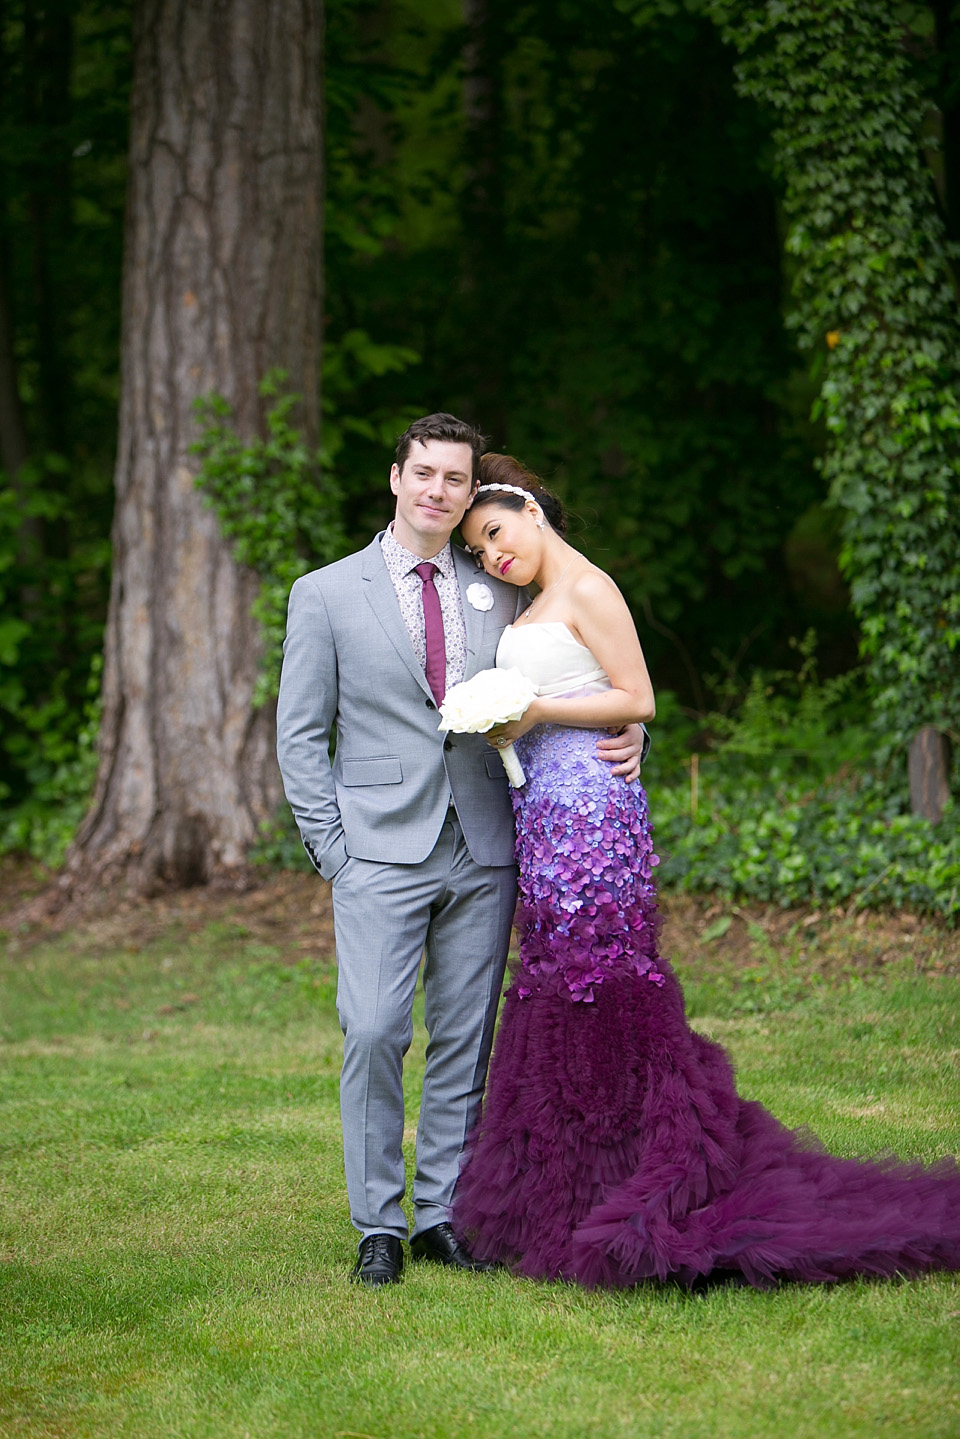 purple ombre floral wedding dress ombre wedding dress A Purple Ombre and Floral Wedding Dress Weddings